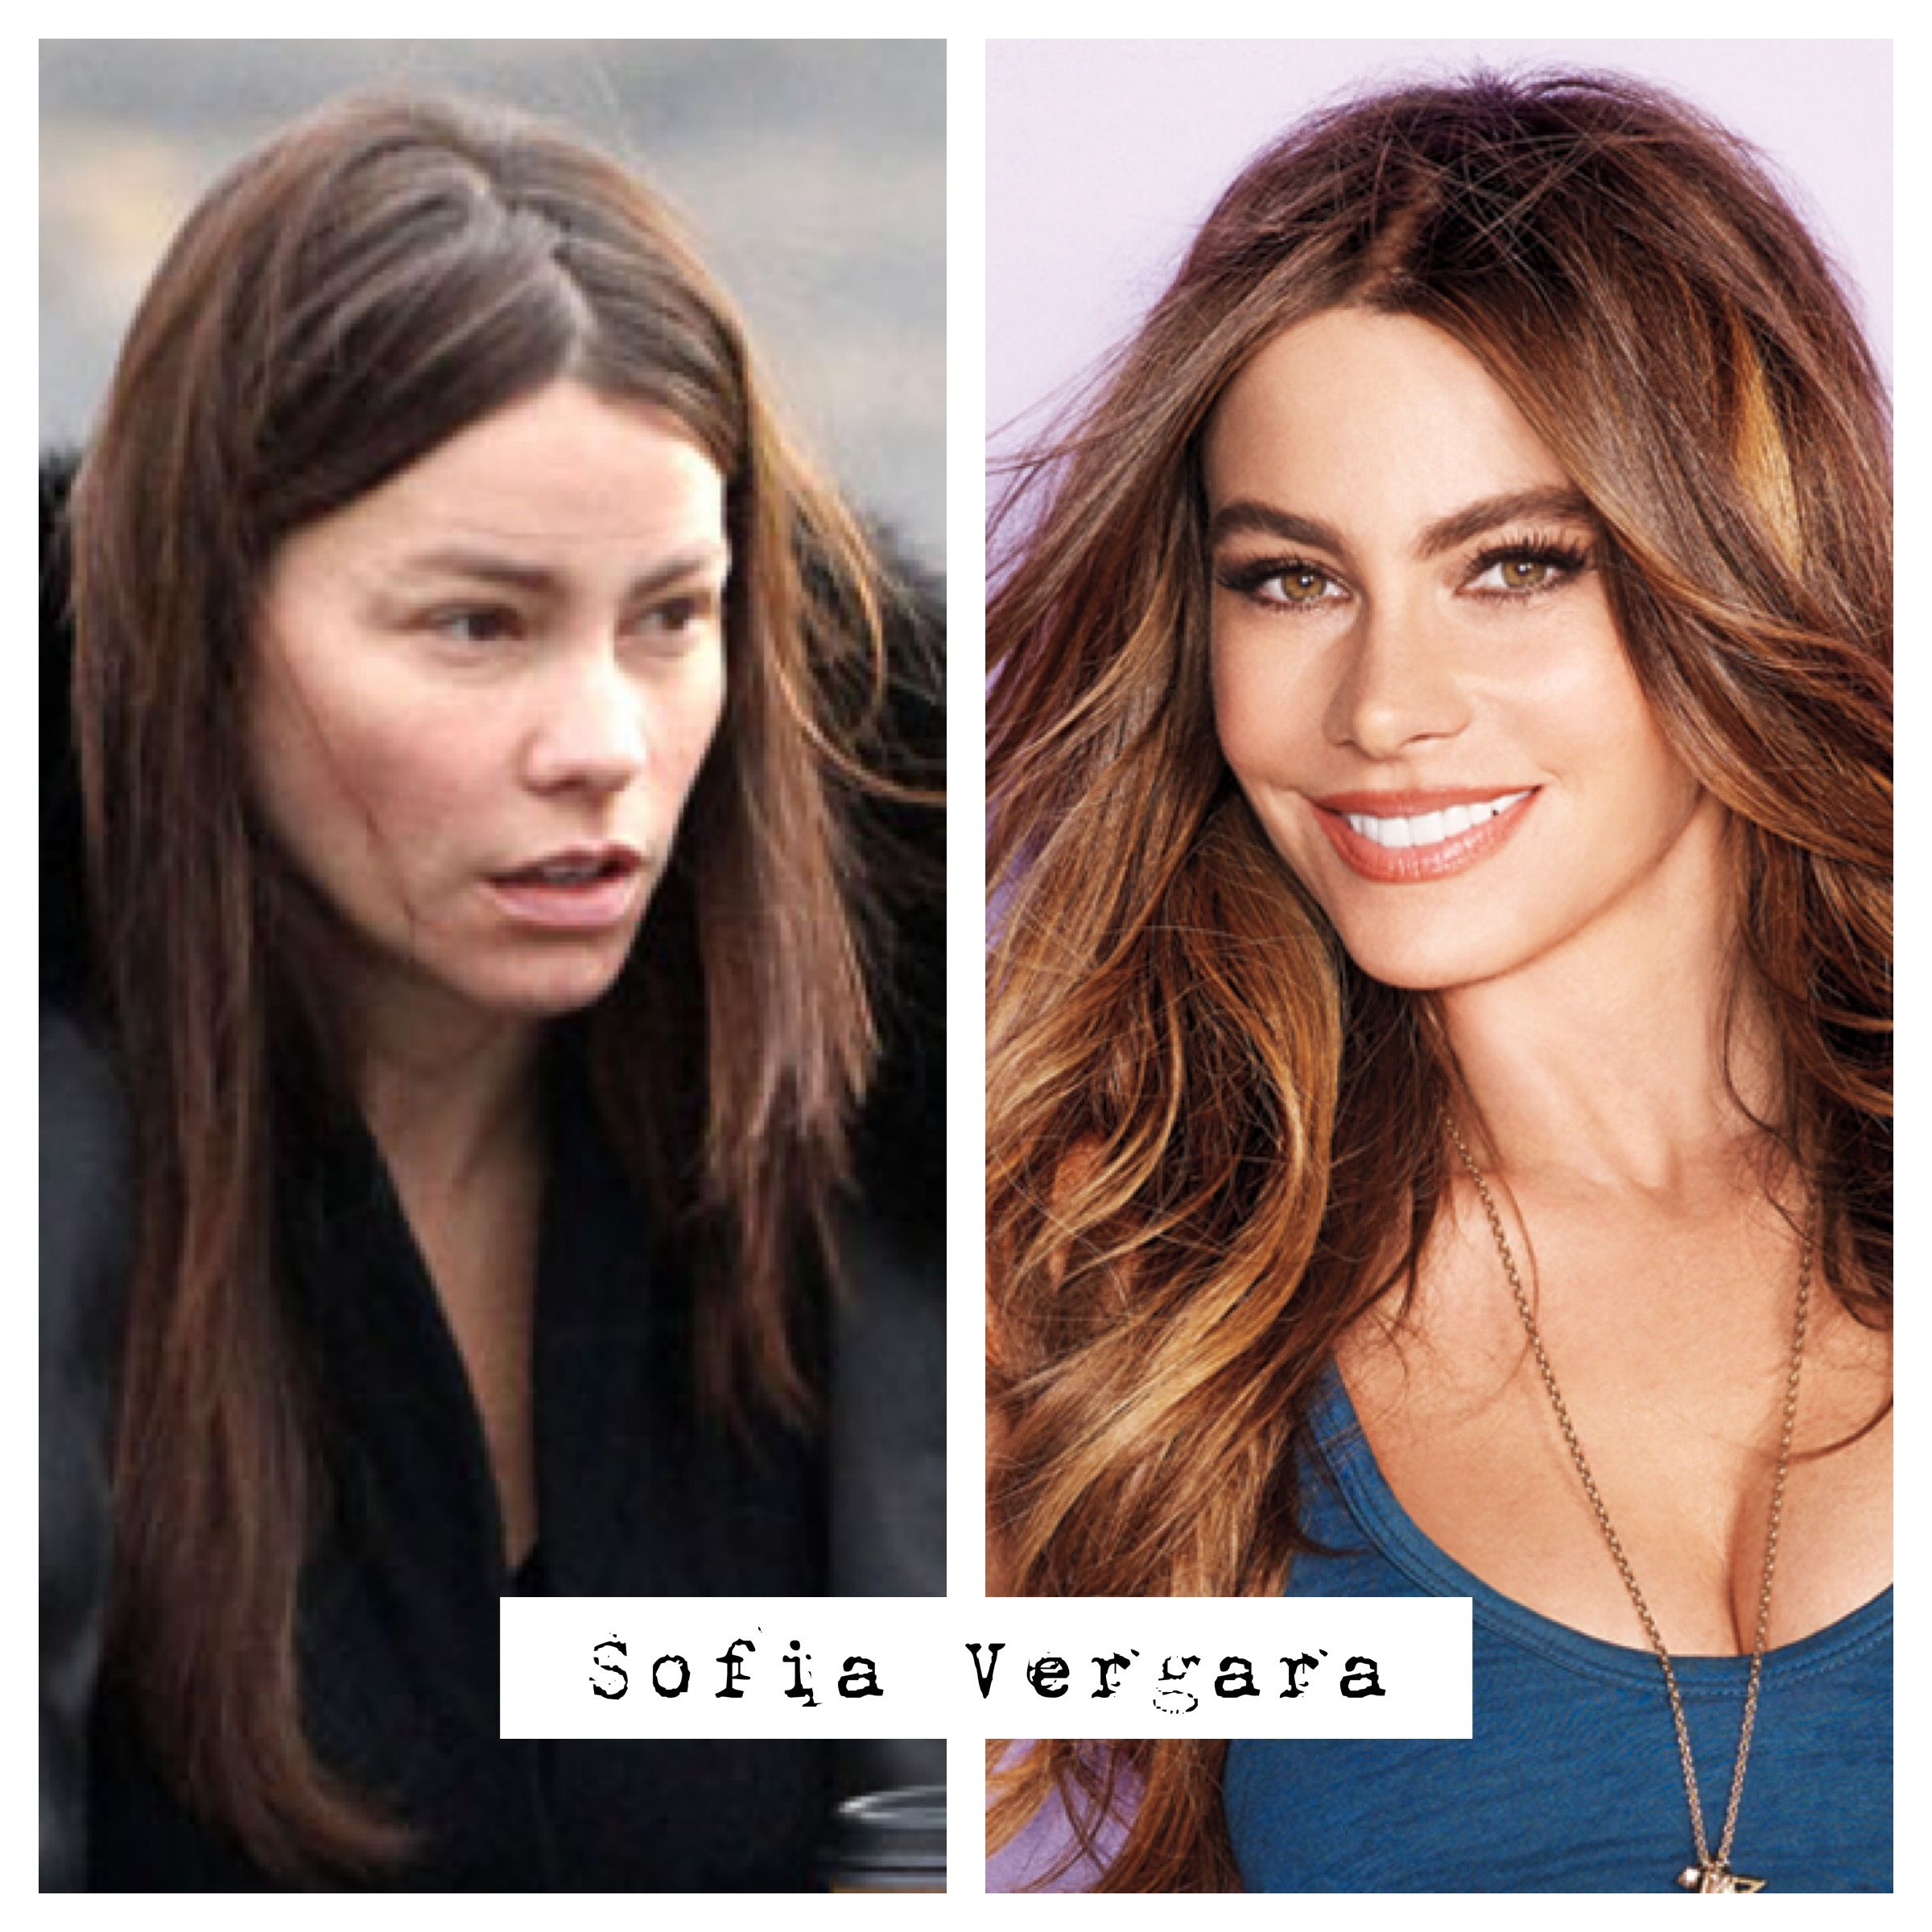 Sofia Vergara No Makeup Before And After This Woman Is Amazing The Perfect Combination Of Beautiful A Sofia Vergara No Makeup Makeup Before And After Beauty